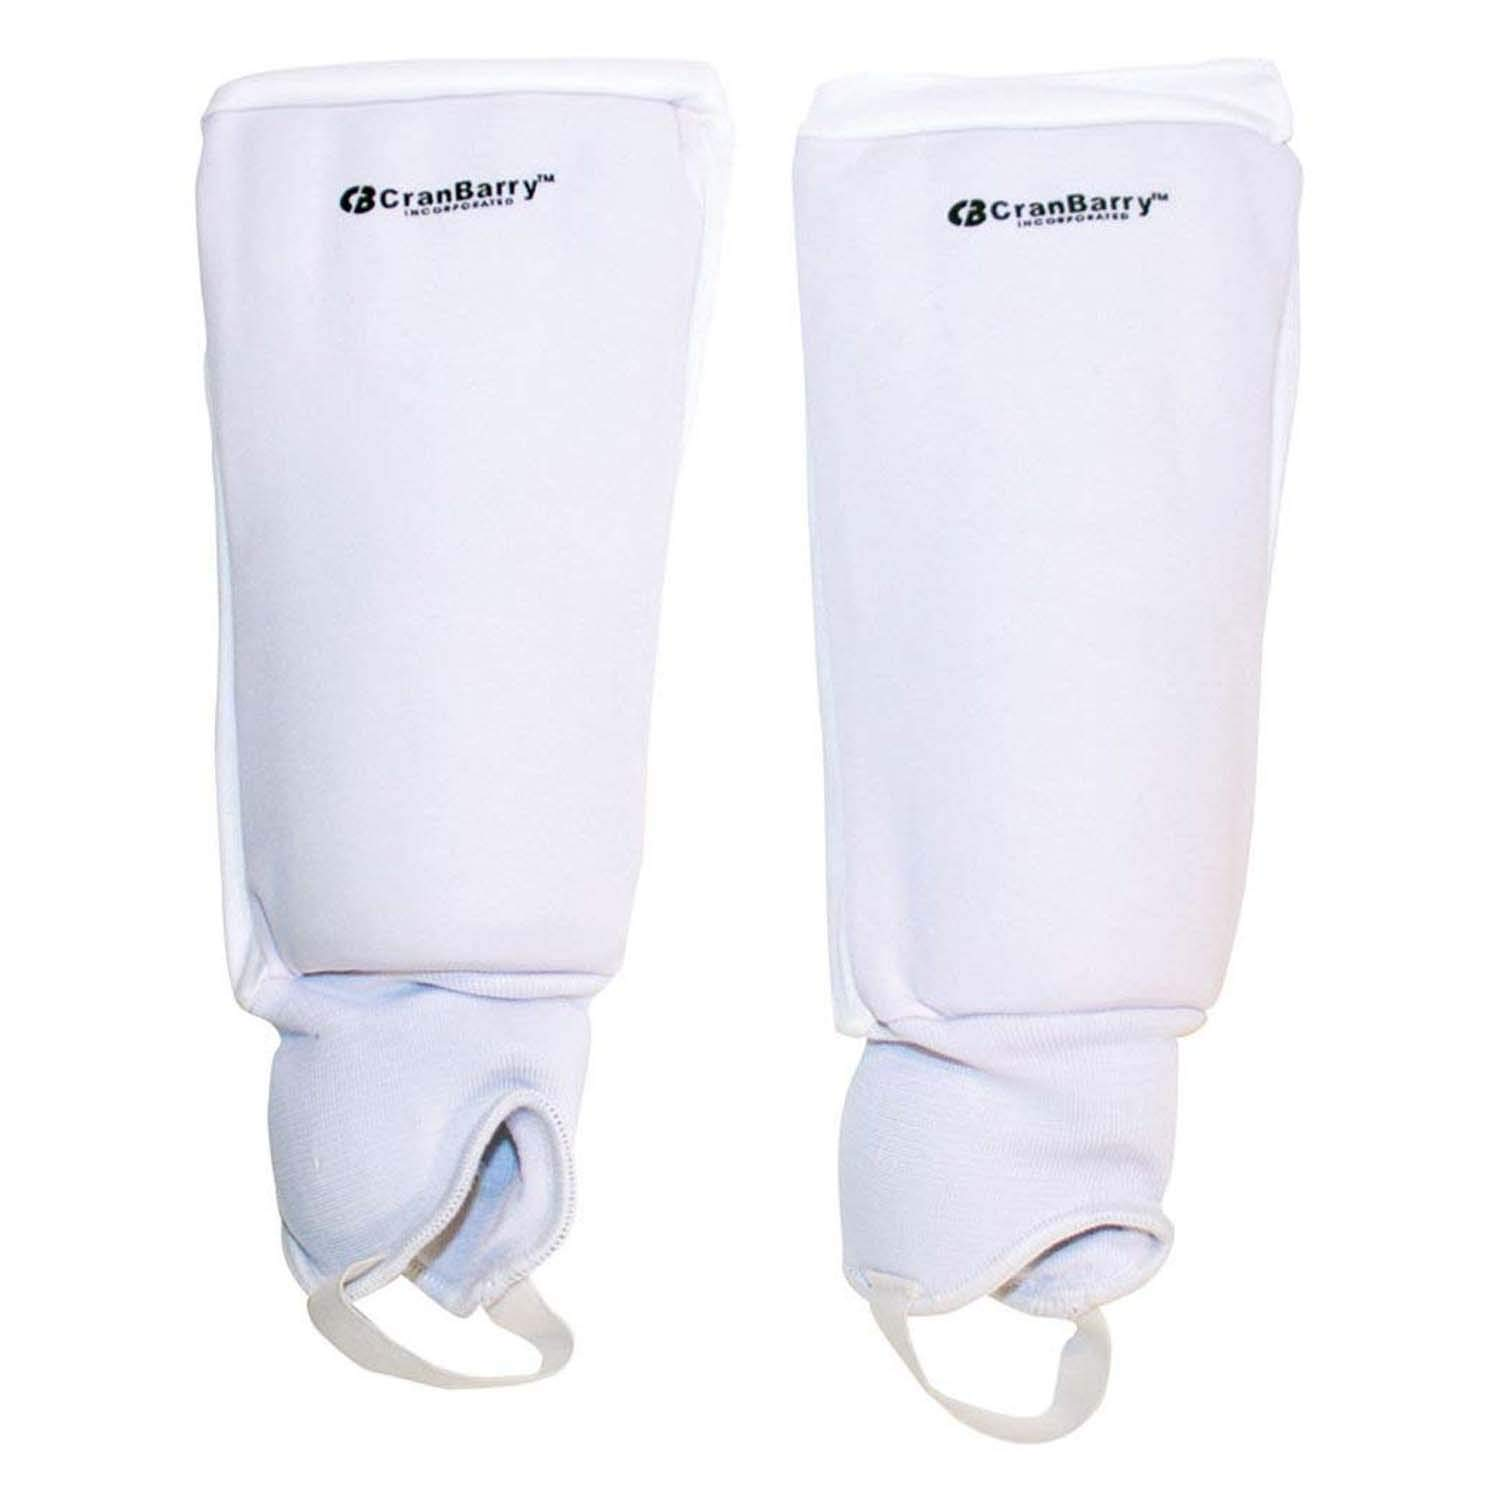 CranBarry Deluxe Field Hockey Shin Guards